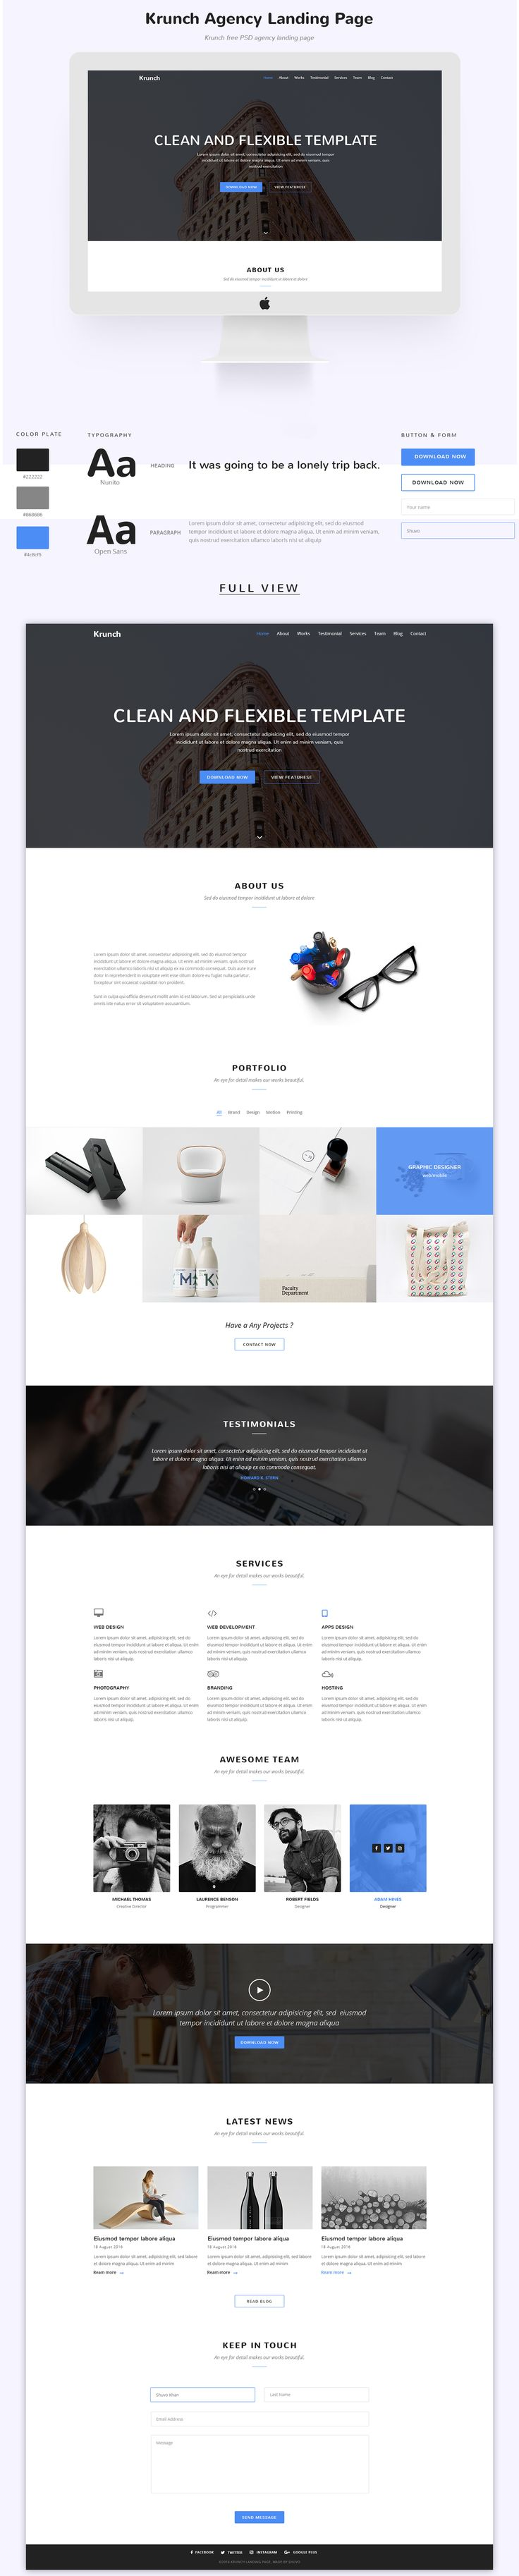 Simple Agency Landing Page Design Concept